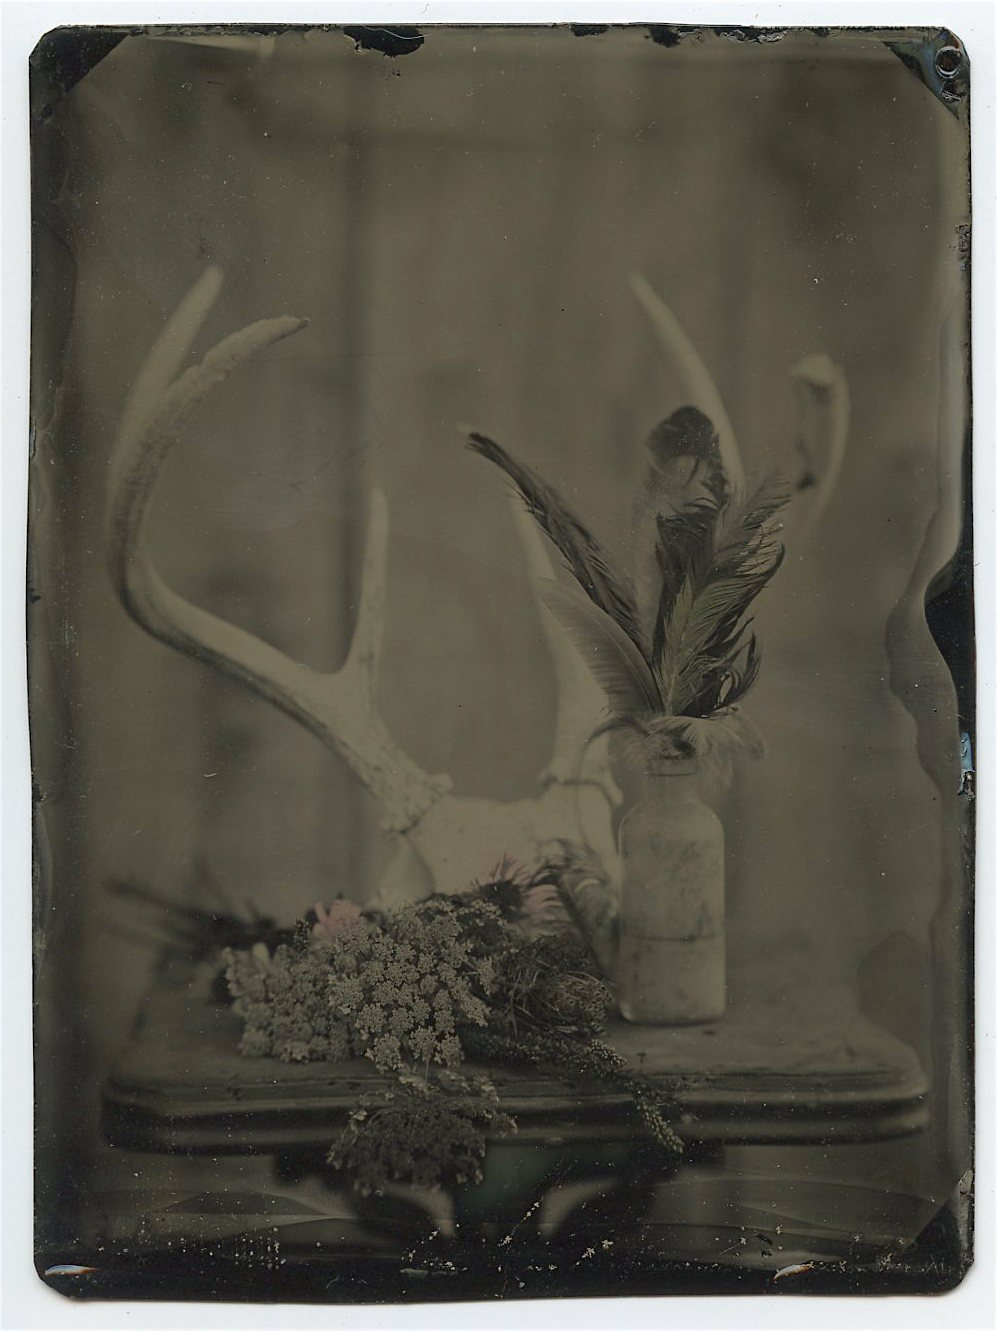 camp tintype 2017